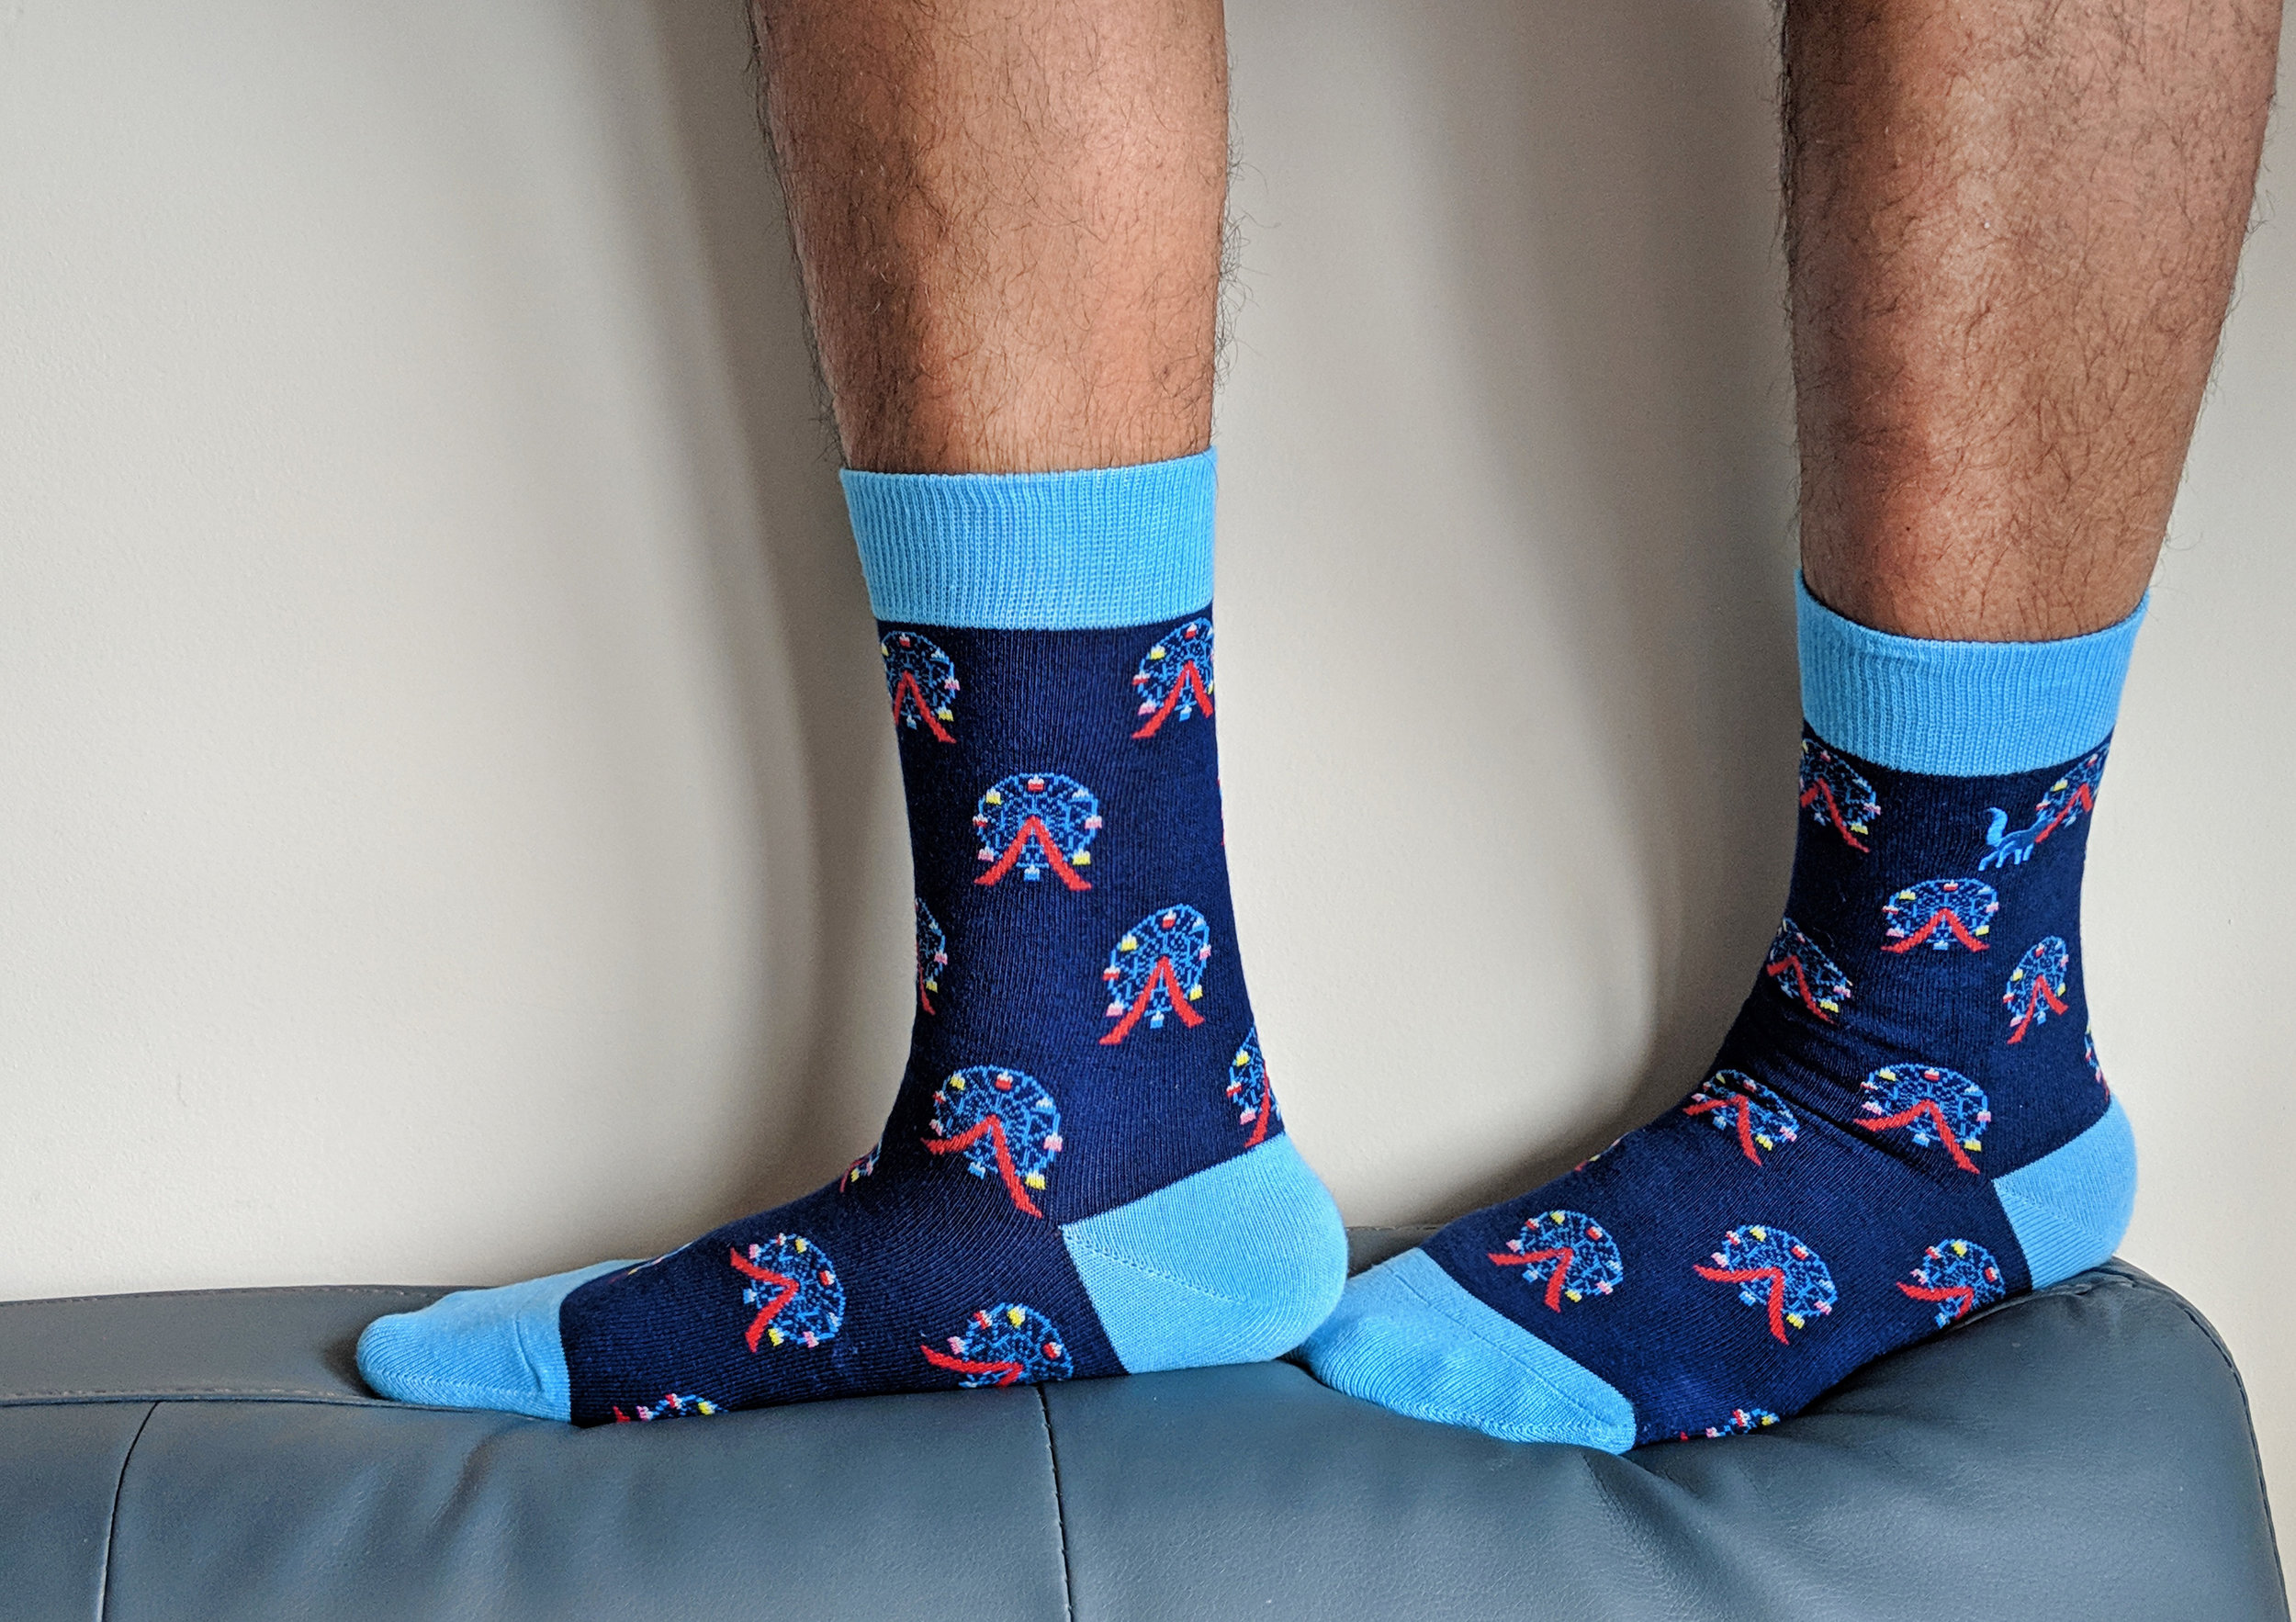 Ready to go for a Joy Ride? Pretty sure you can have lots of fun while wearing SlySocks' 'Joy Ride' design - favorite design!